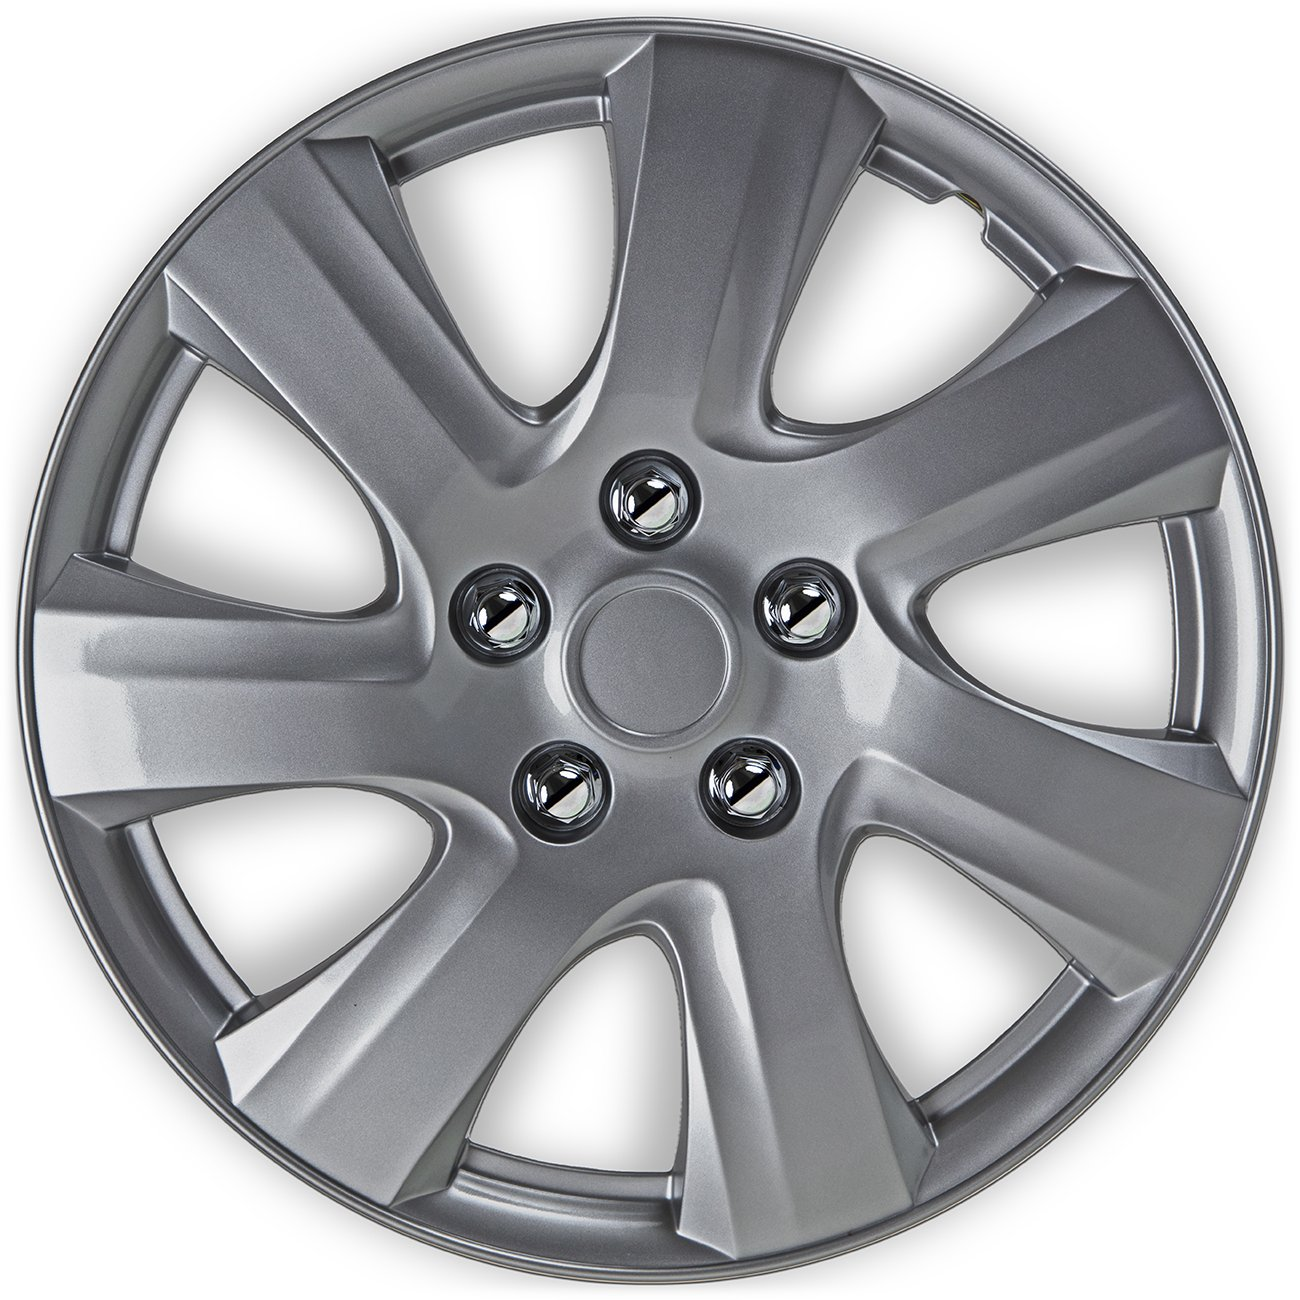 OxGord Hubcaps for Toyota Camry (Pack of 4) Wheel Covers - 16 Inch Silver Replacement by OxGord (Image #3)